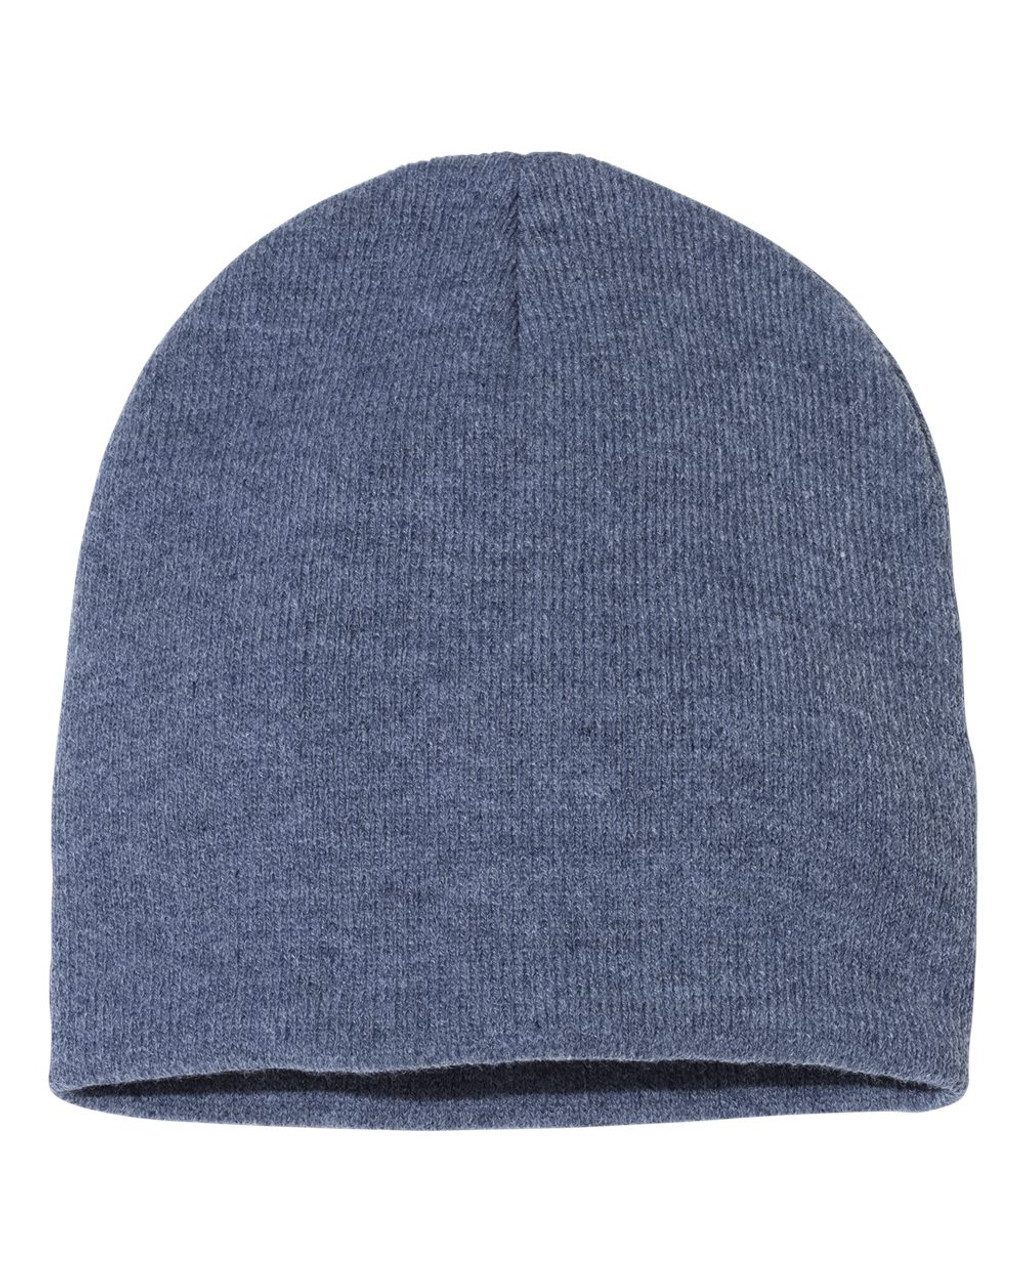 "Heather Navy - SP08 Sportsman Acrylic Knit 8"" Toque 